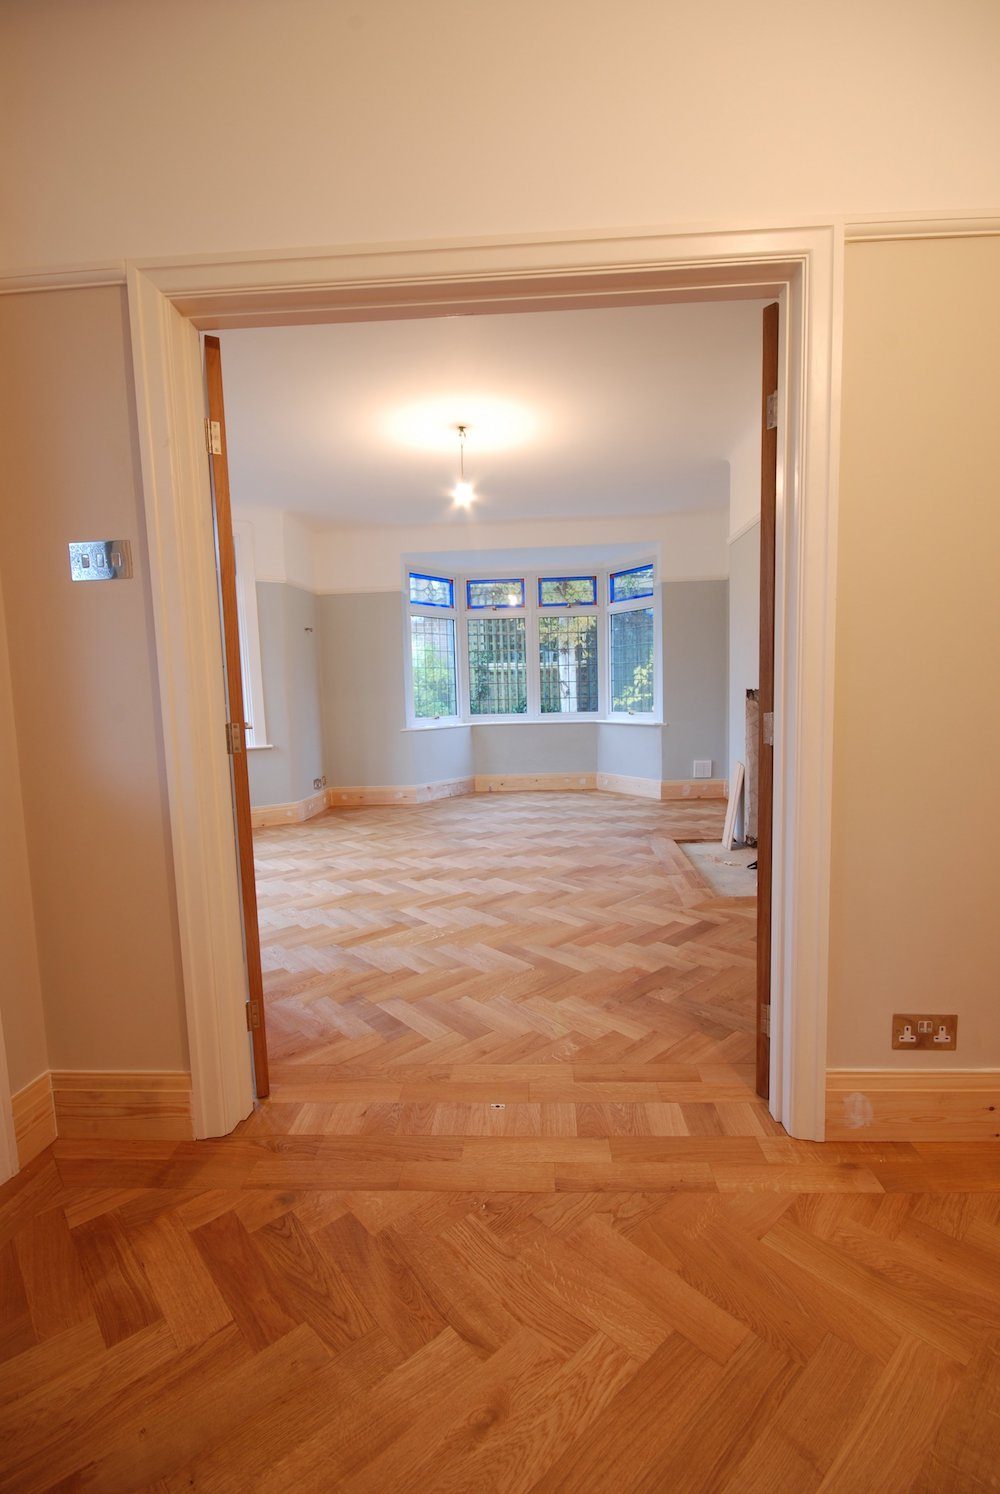 completed installation of parquet flooring